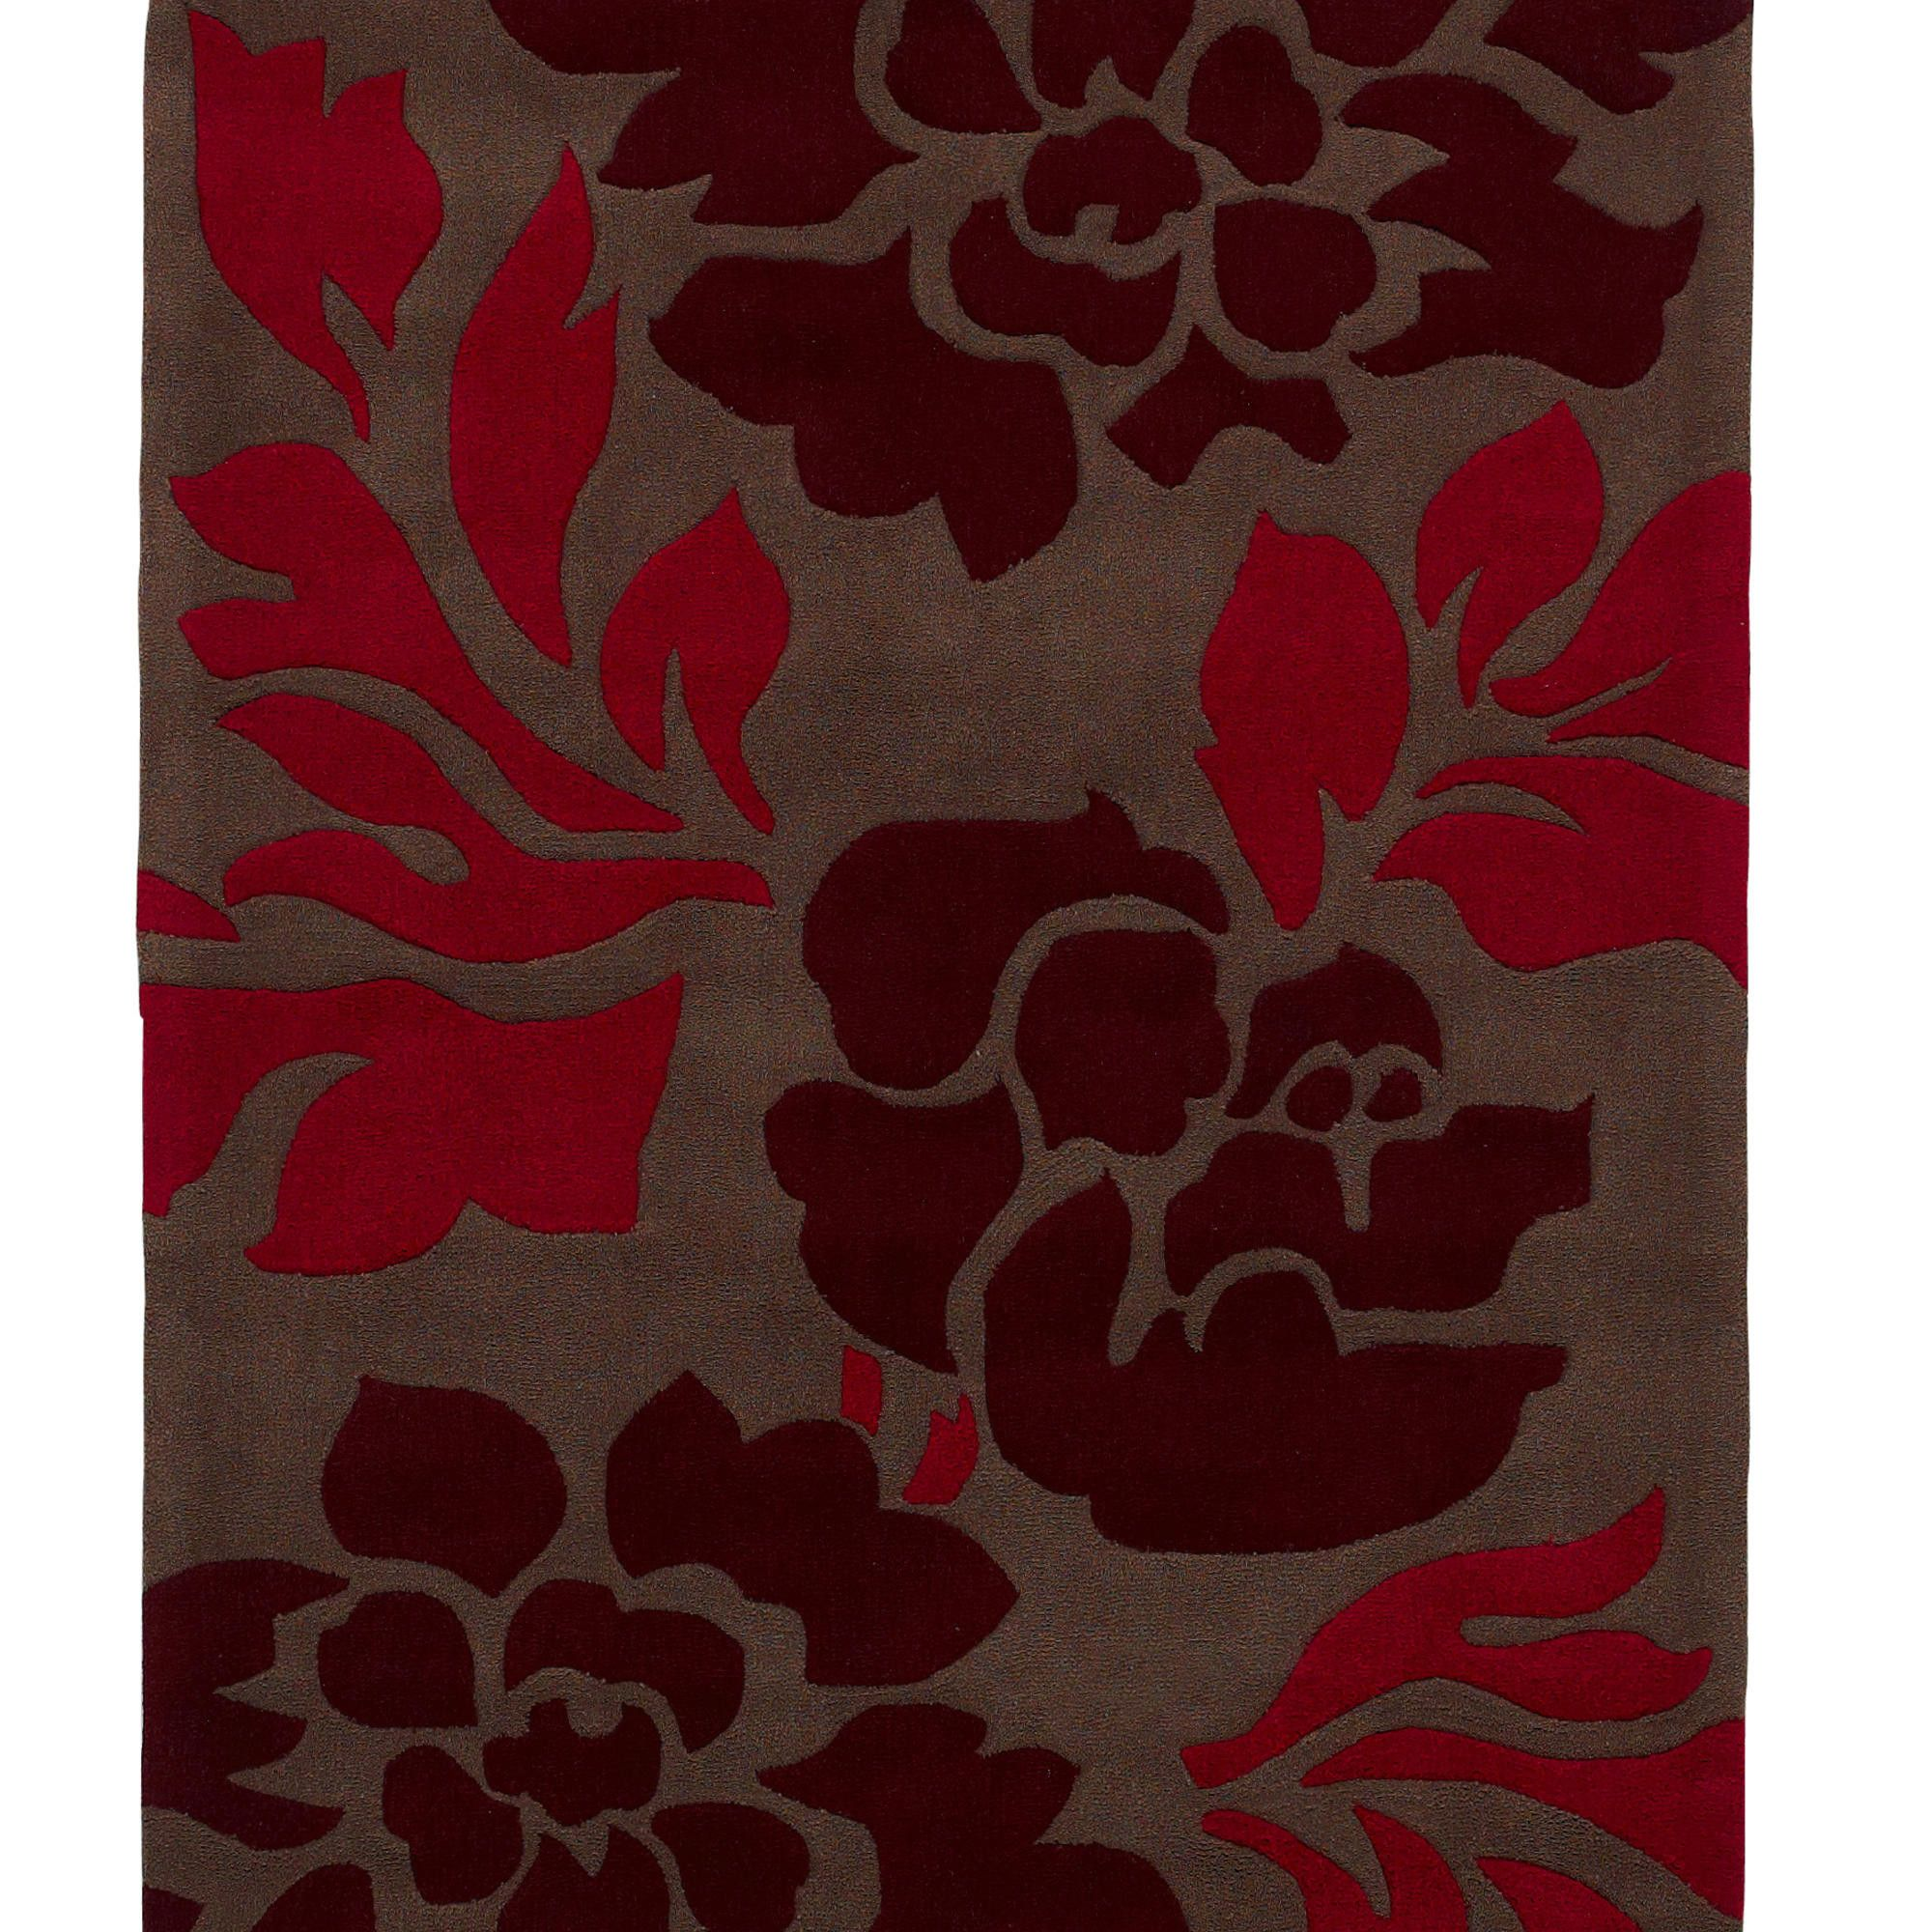 Oriental Carpets & Rugs Hong Kong 33L Brown/Red Rug - 90cm x 150cm